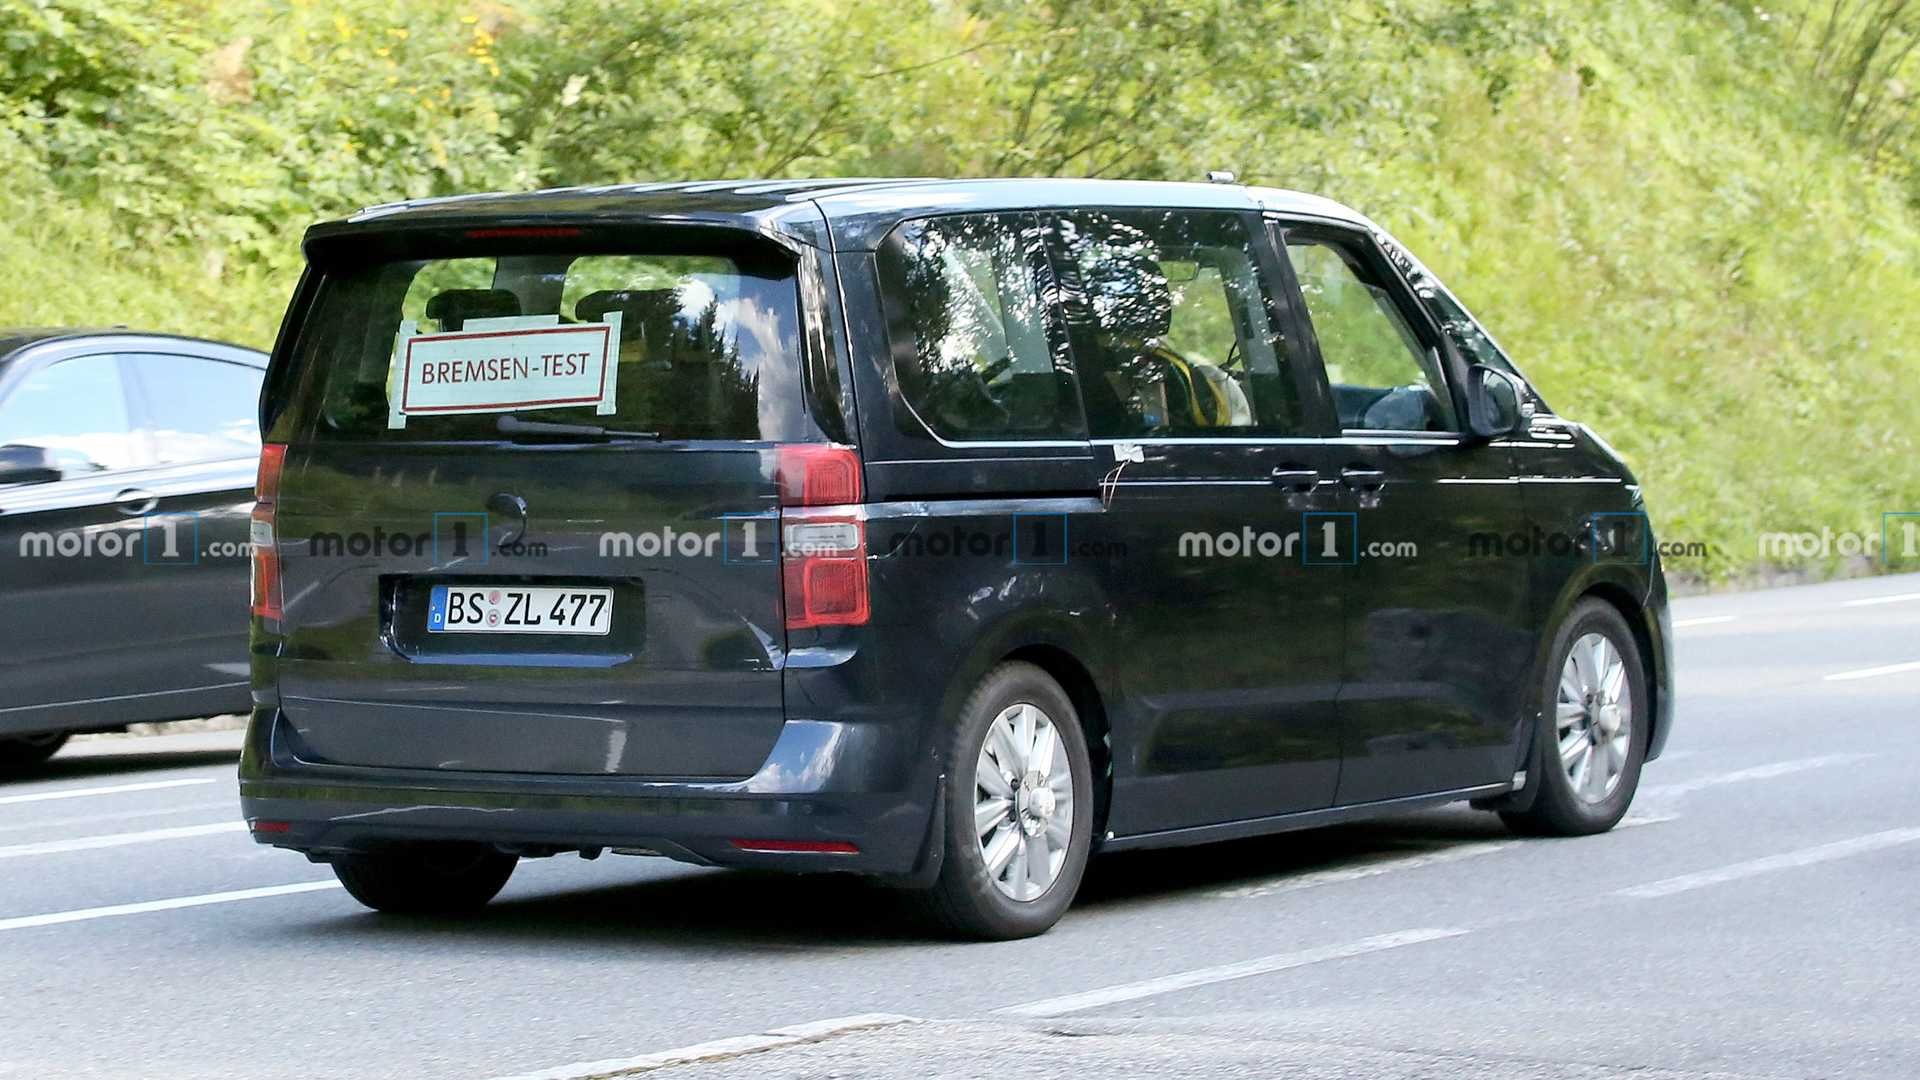 2021 - [Volkswagen] Transporter [T7] - Page 3 Vw-transporter-t7-new-spy-photo-side-view